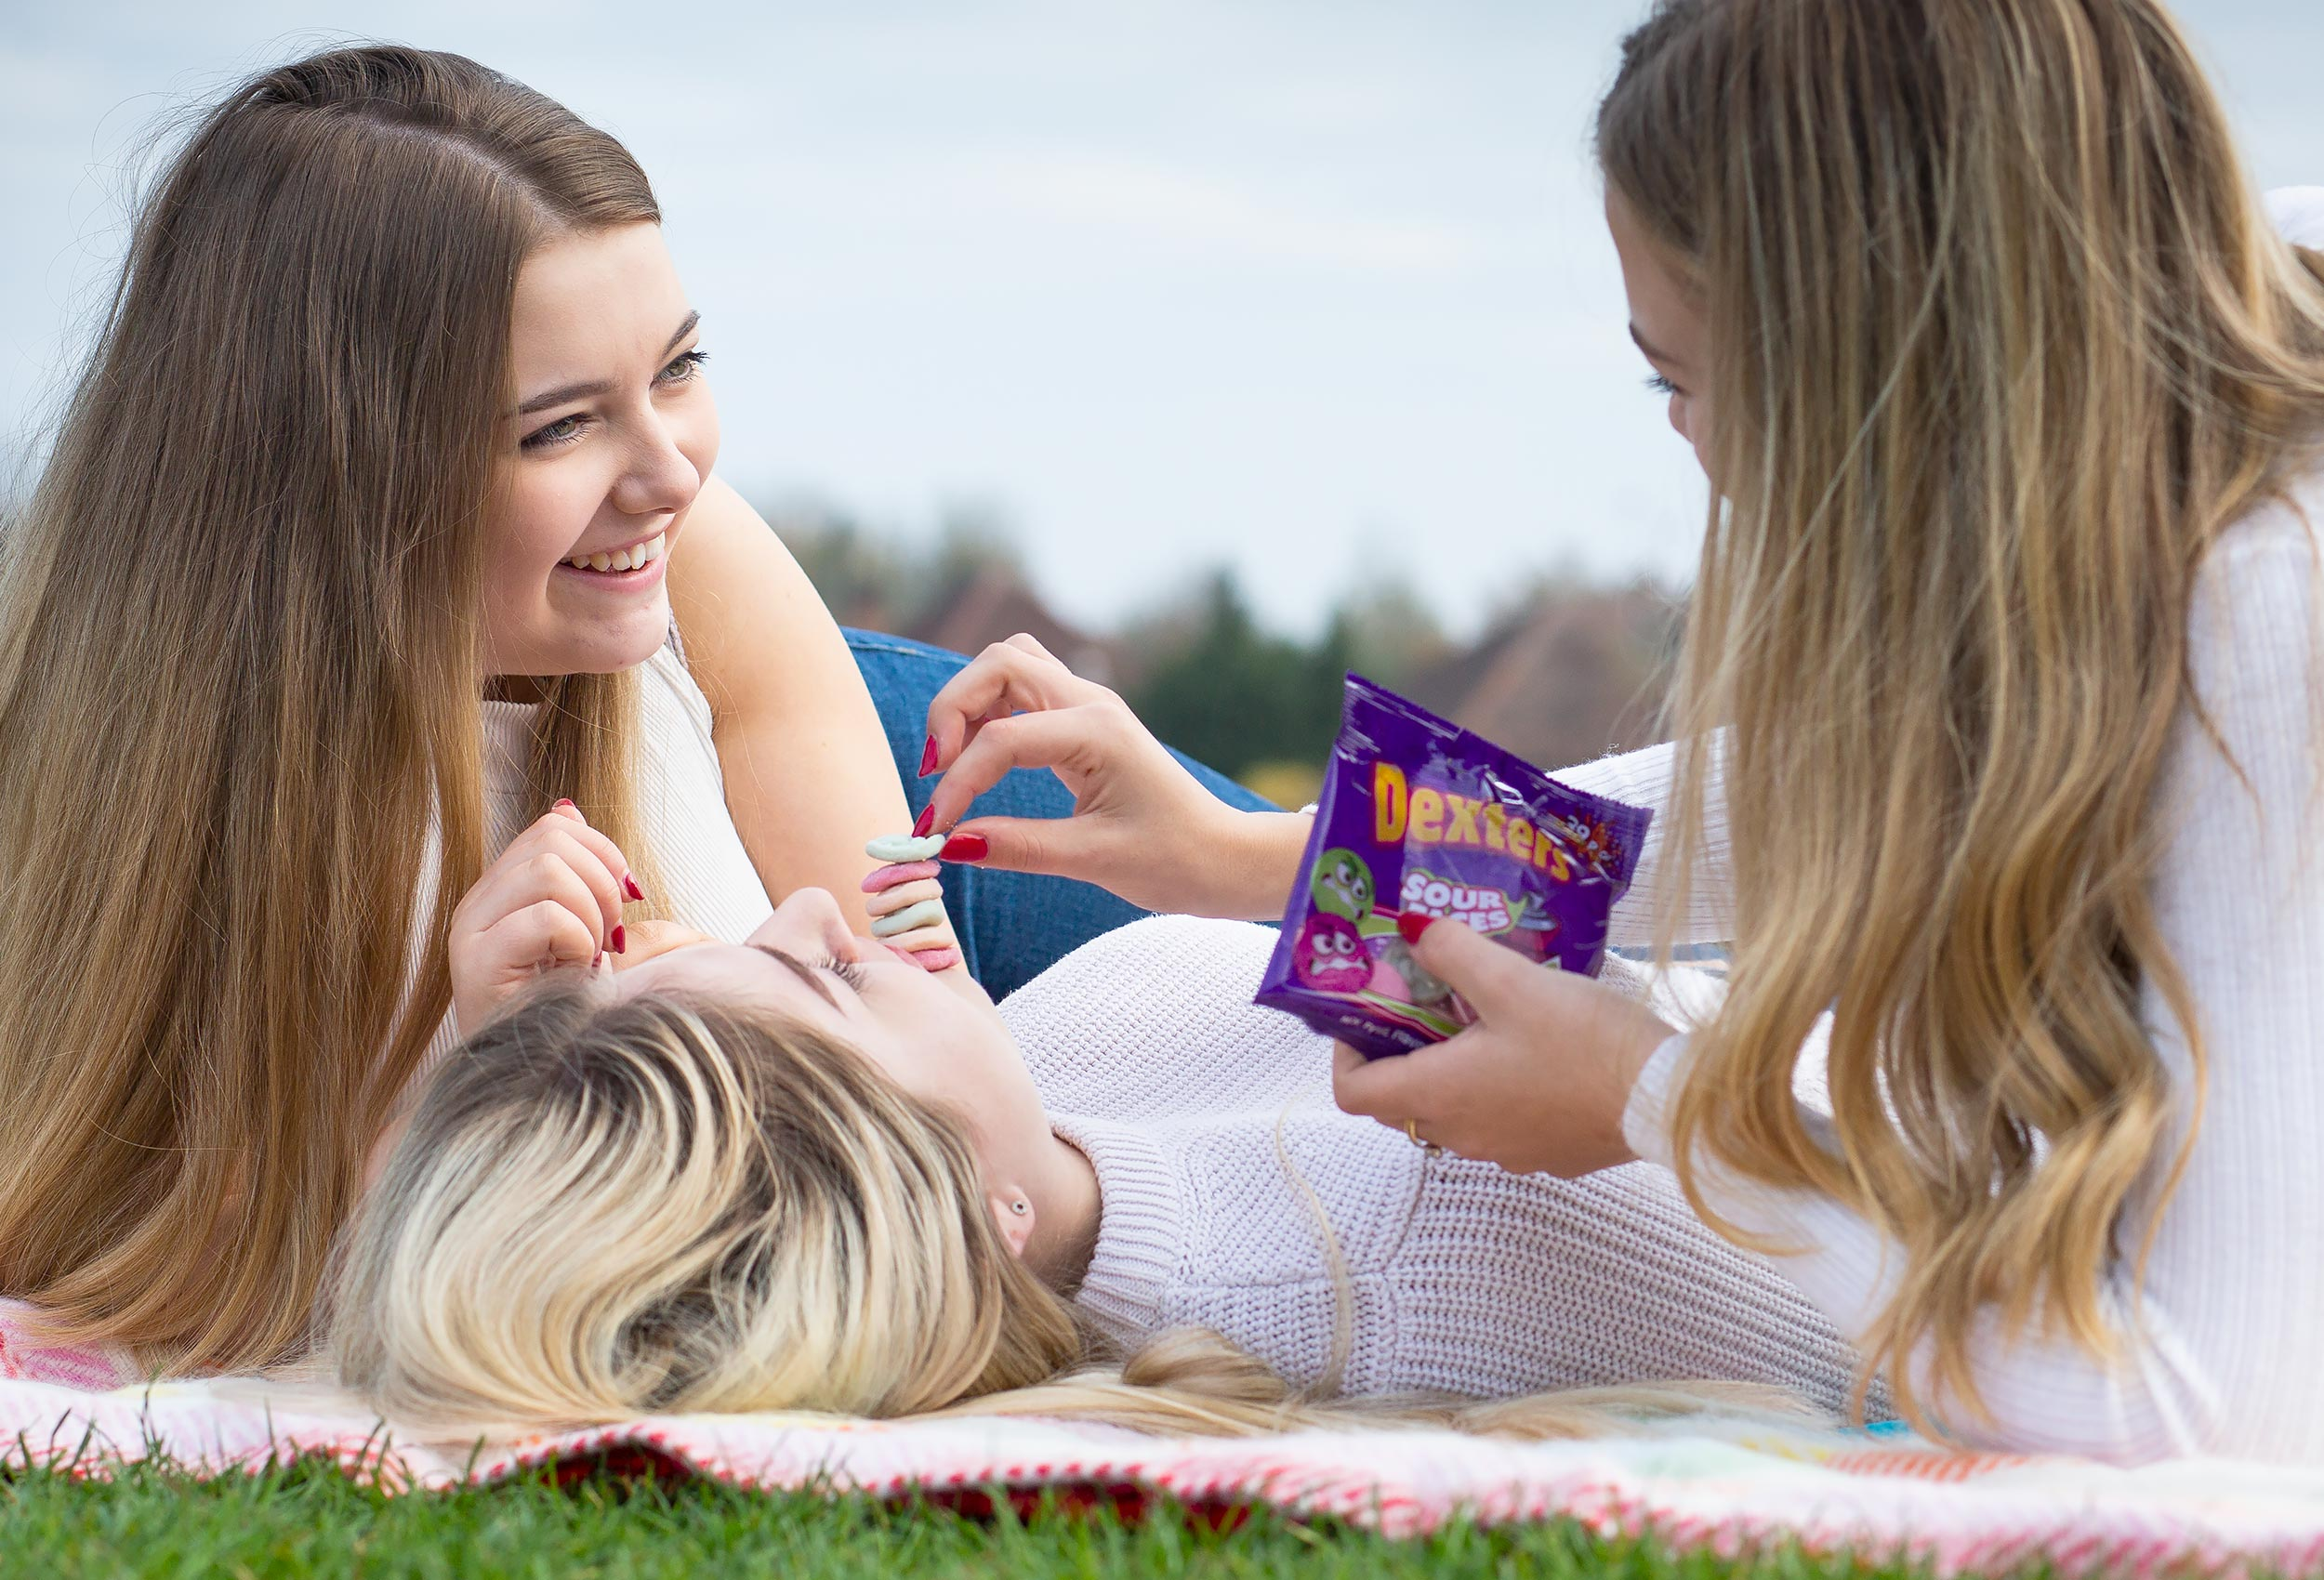 Commercial photography of friends on a picnic rug in a Leicestershire park balancing sweets on each other.